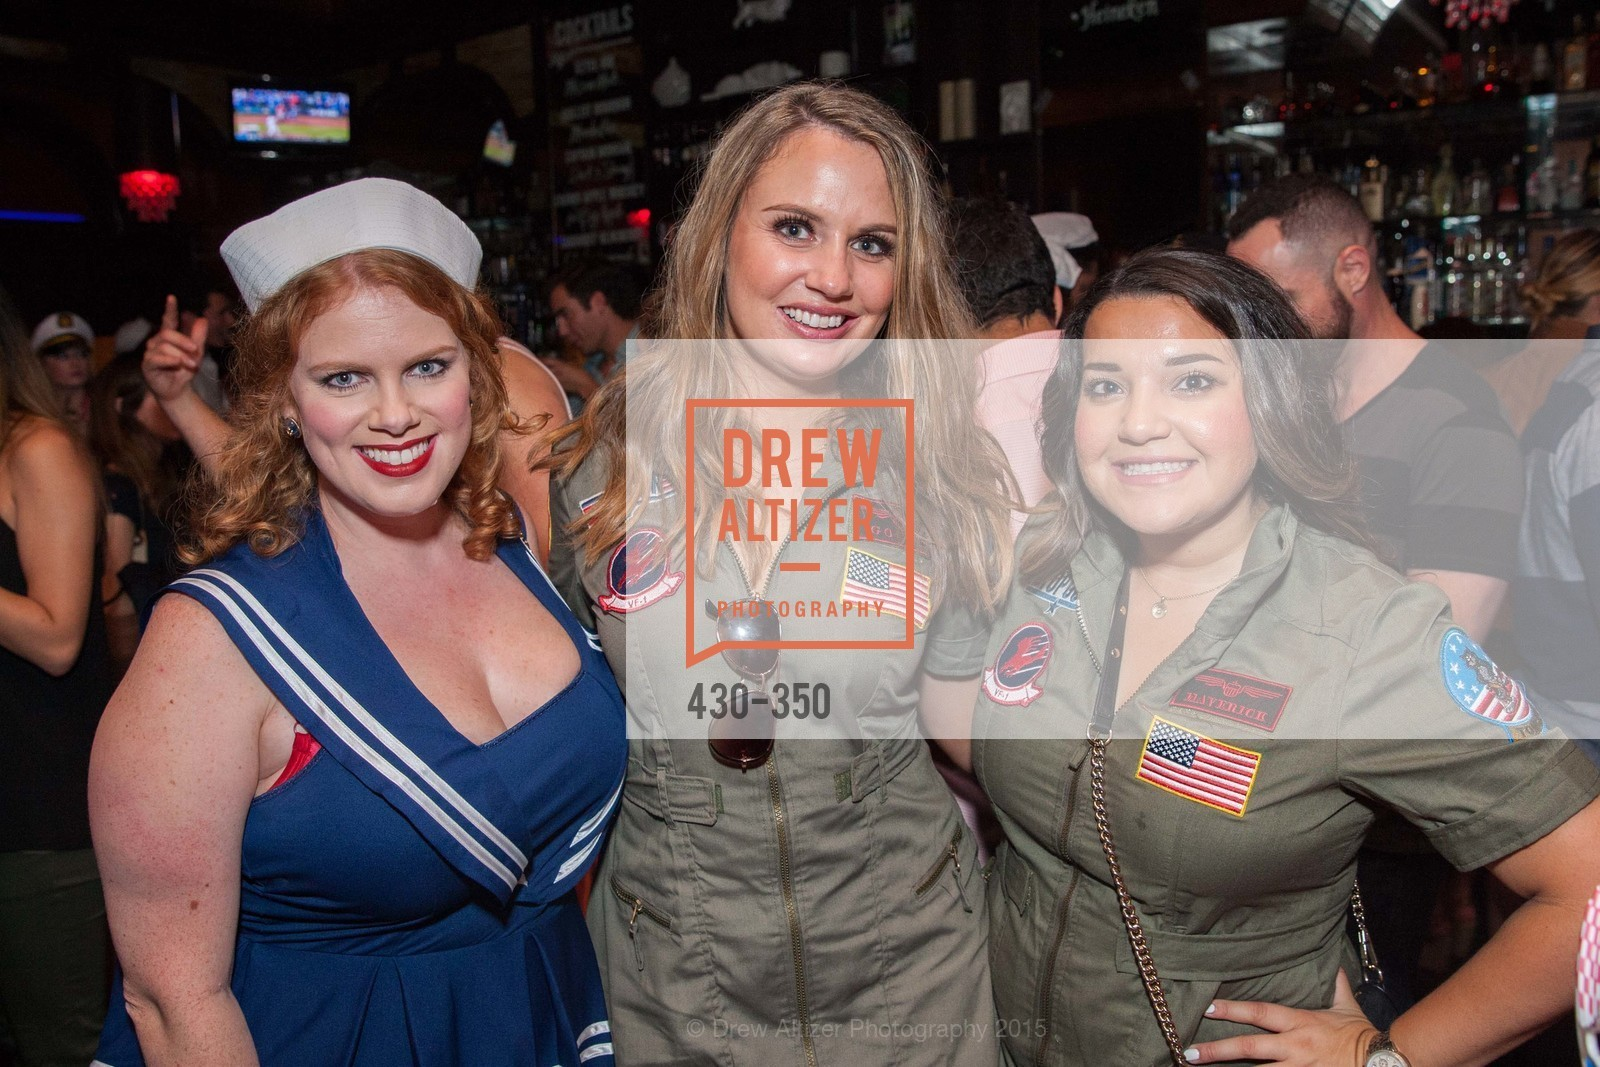 Elizabeth Wilson, Ashley Tarichin, Andrea Valencia, Spinsters of San Francisco Presents: Fleet or Flight, Mayes Oyster House. 1233 Polk St, October 9th, 2015,Drew Altizer, Drew Altizer Photography, full-service agency, private events, San Francisco photographer, photographer california